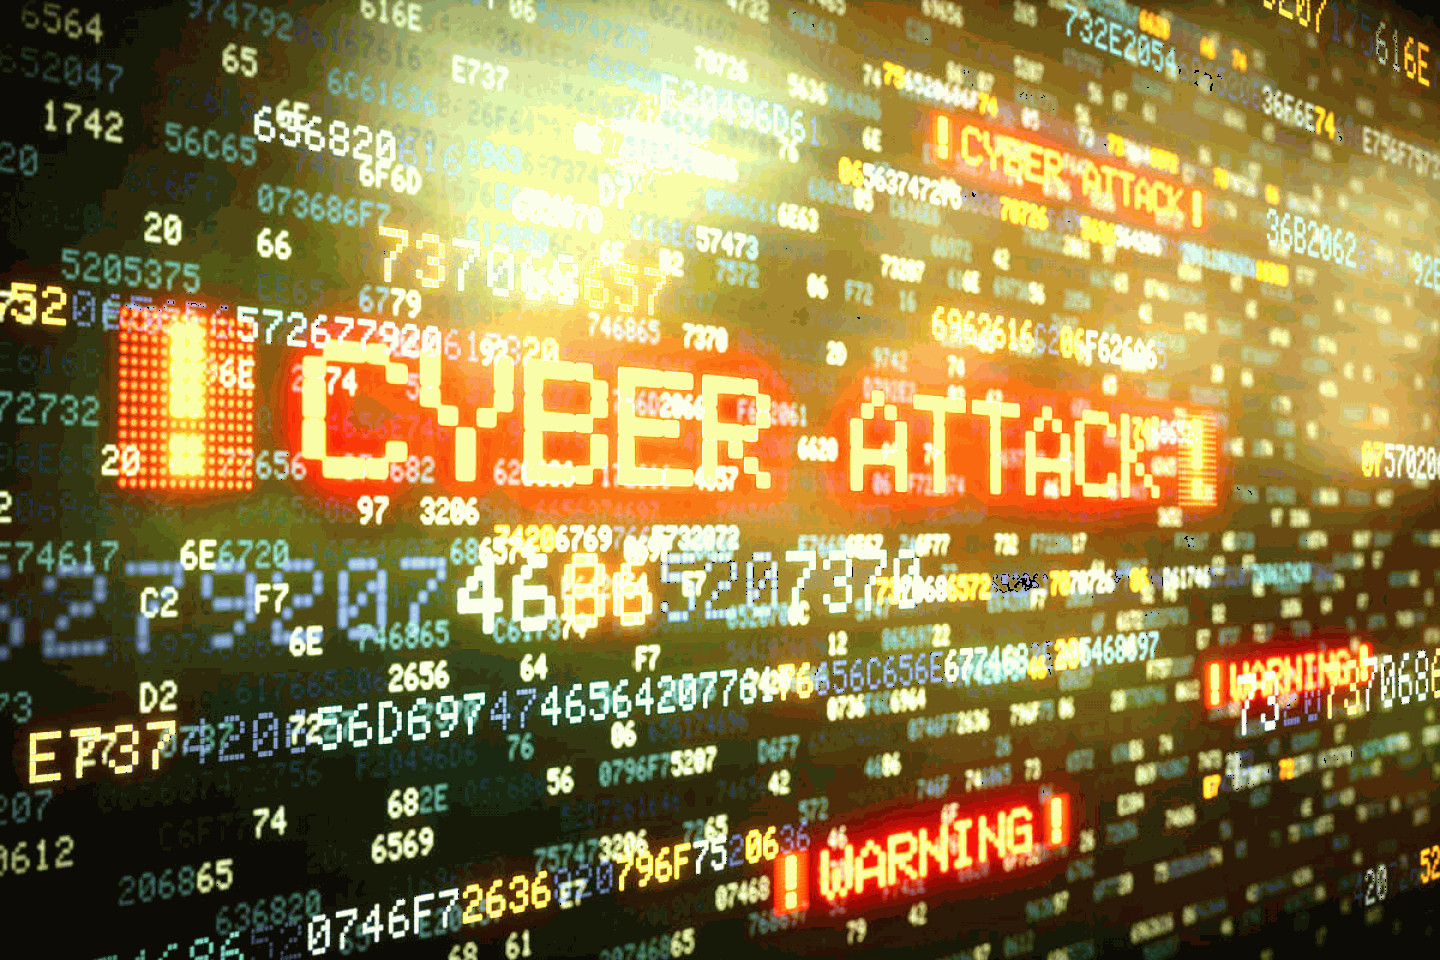 Multi-Vector Attack Plans: What Is A Cyber Attack Recent Examples Show Disturbing Trends